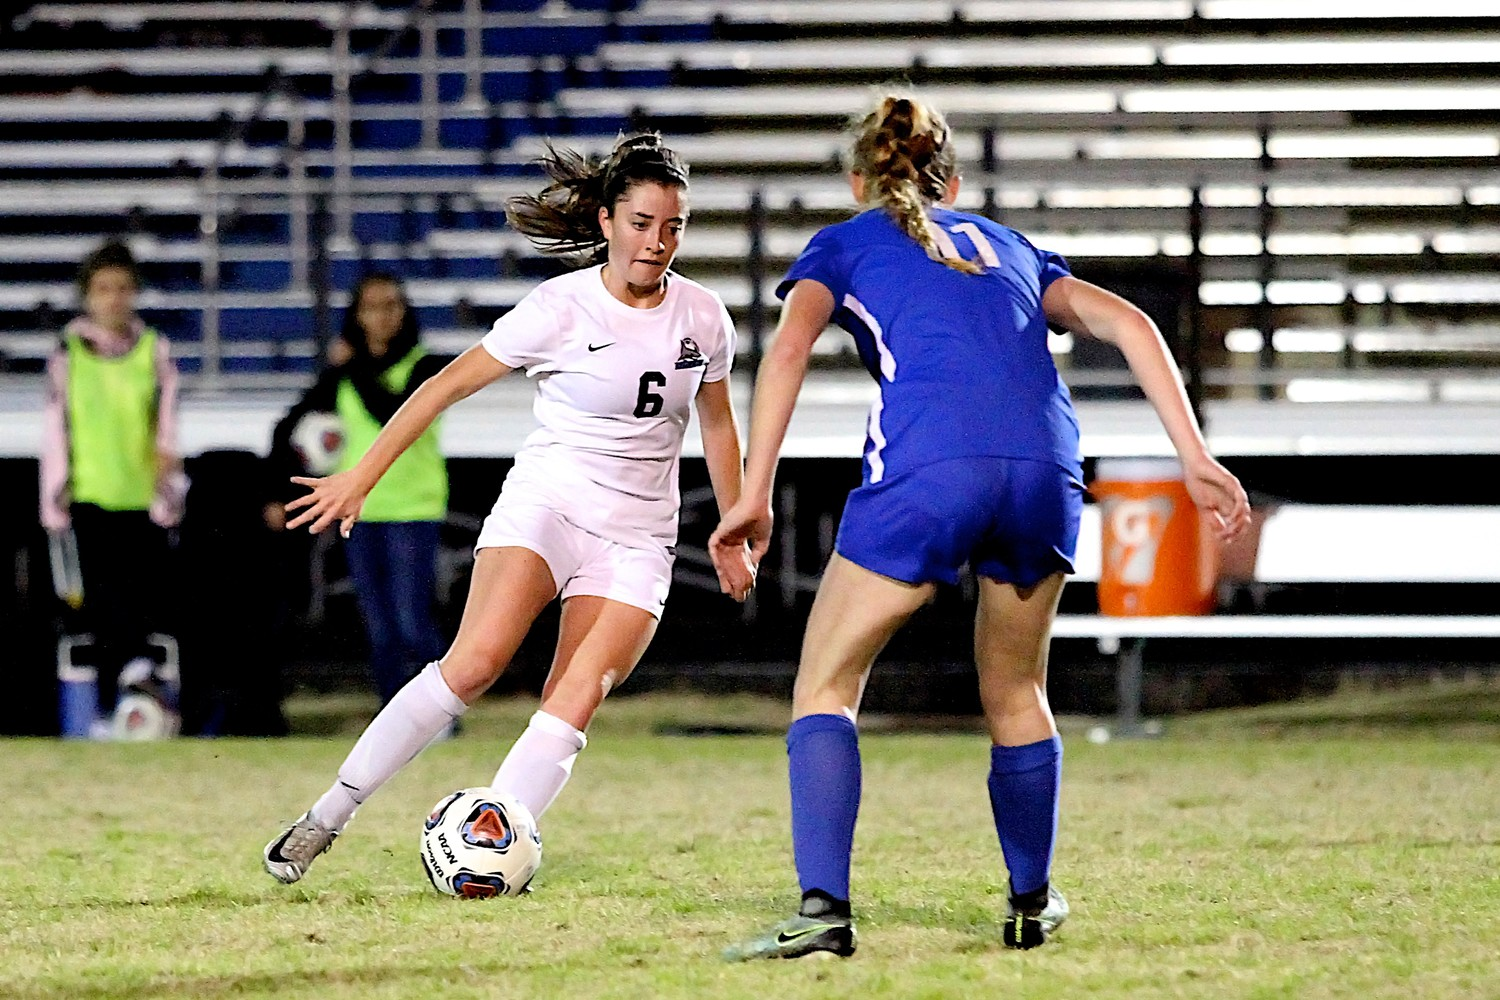 Molly Miler of the Sharks moves the ball past a Pedro defender.